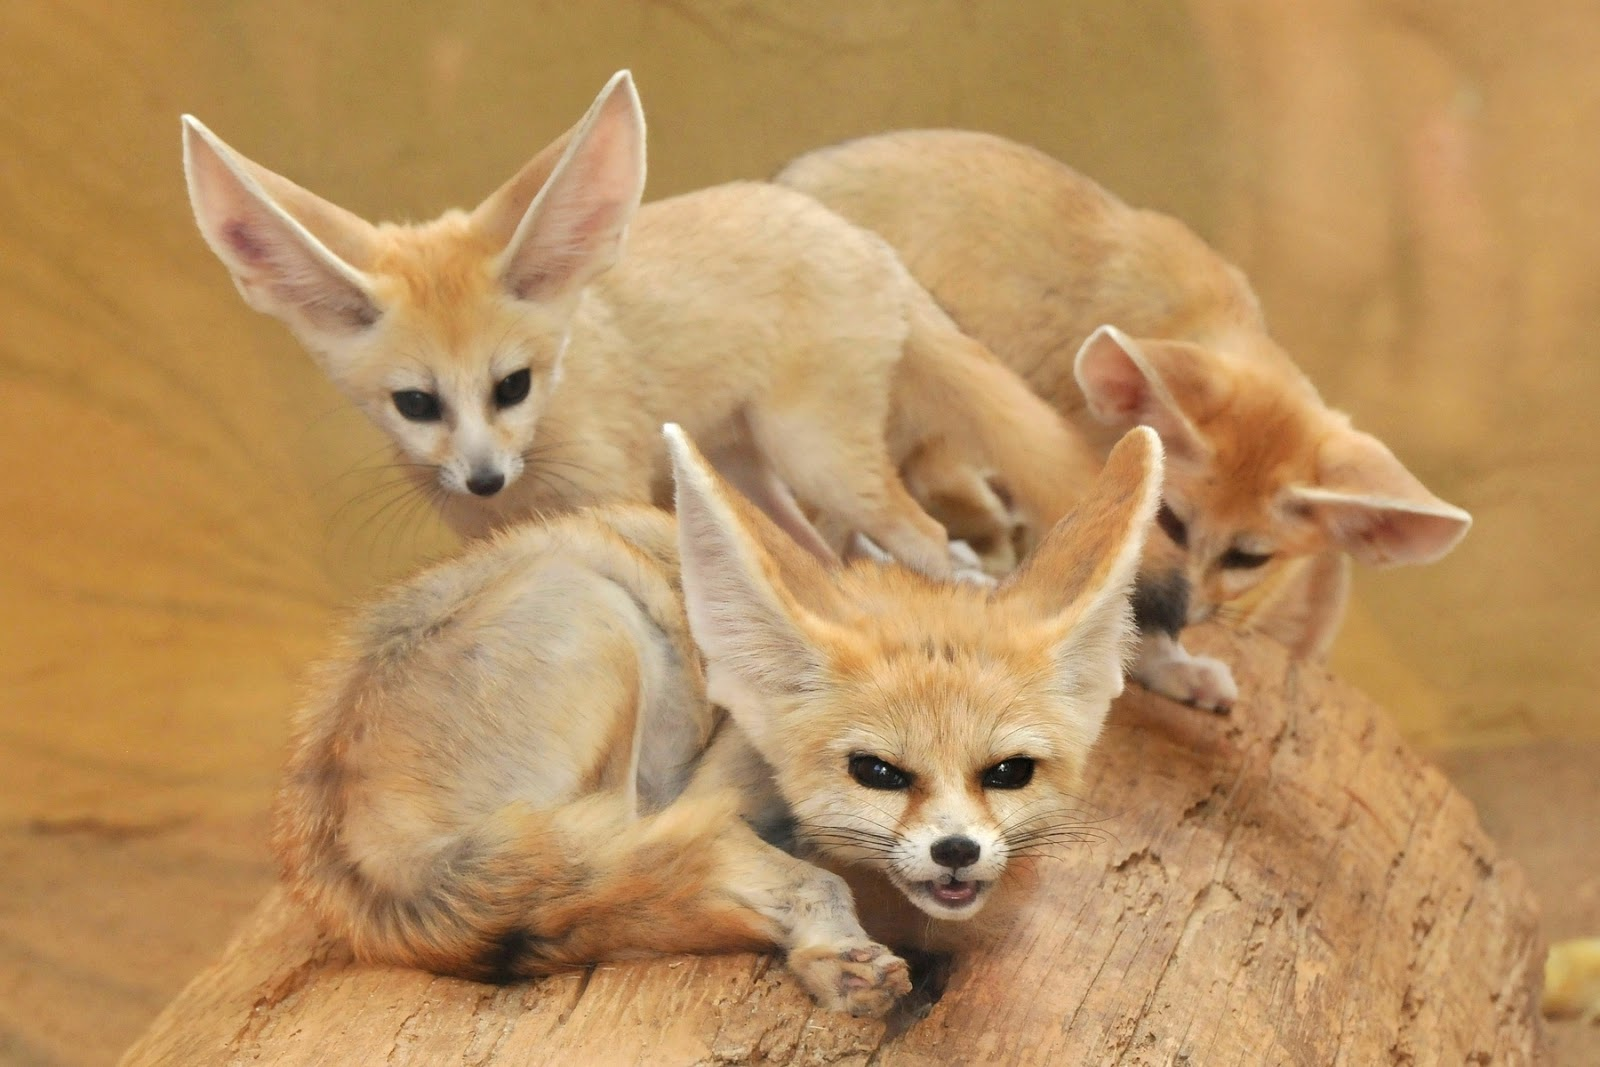 Fennec Fox Facts And Pictures-images